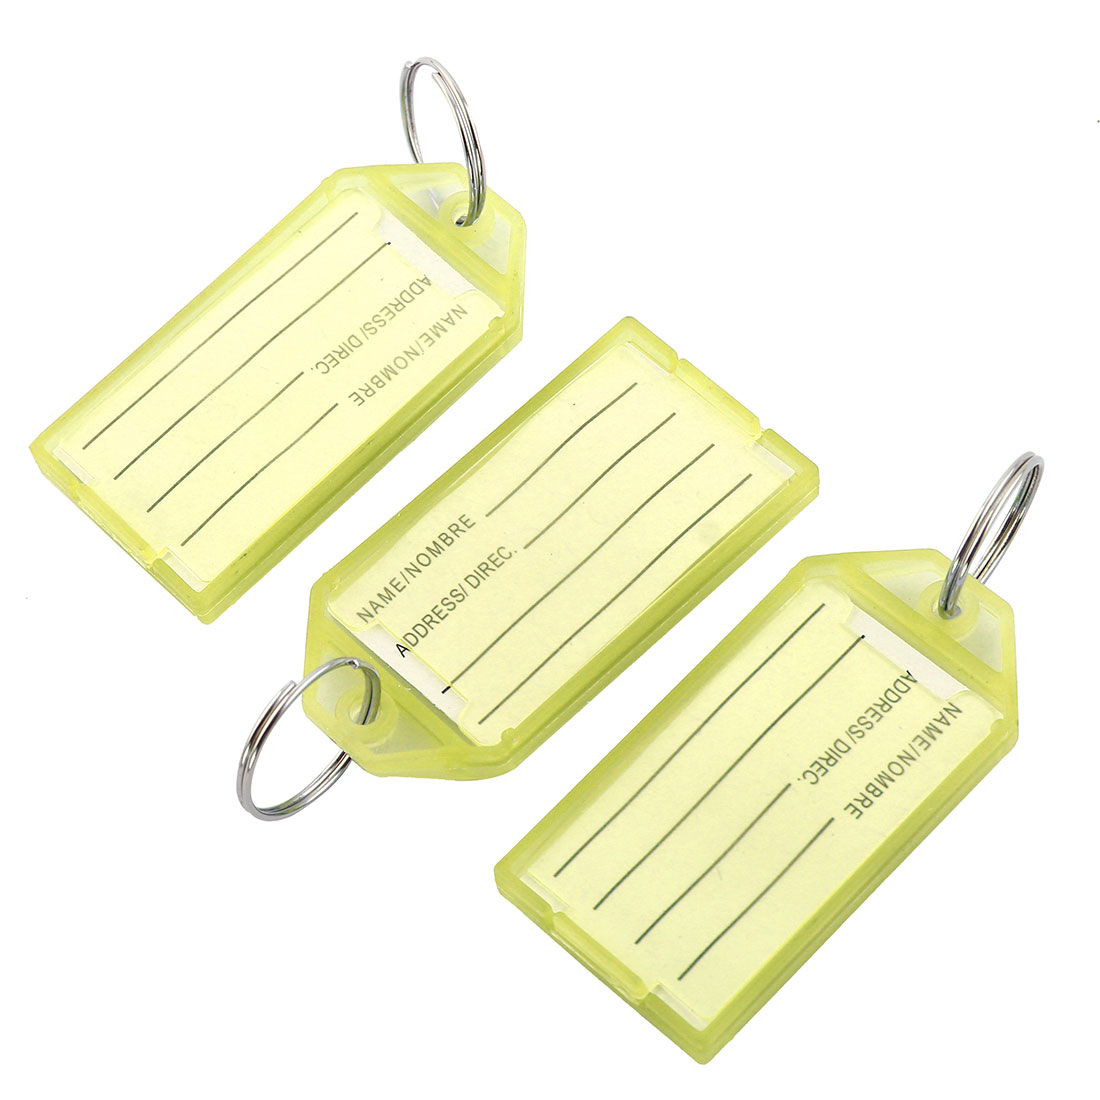 Travel Outdoor Plastic Rectangle Shaped Suitcase Luggage Tag Baggage Label Keyring Yellow 3pcs